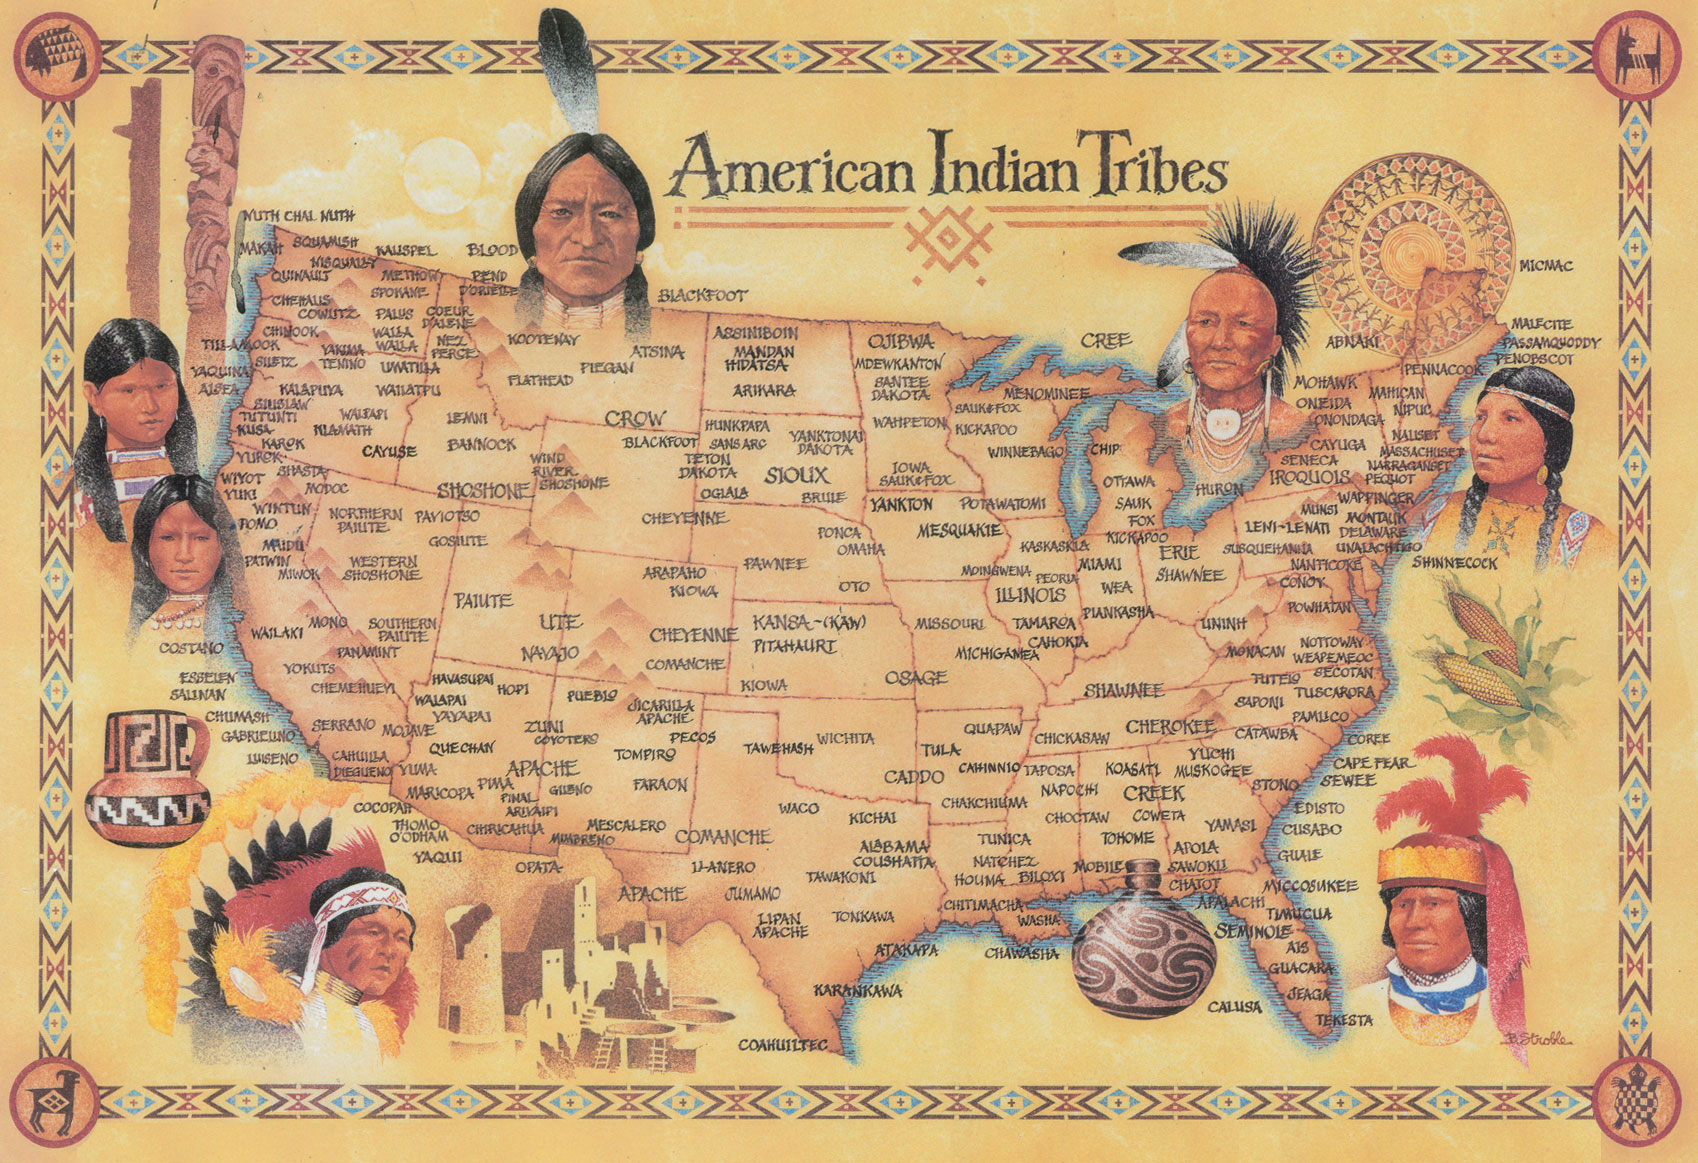 There were hundreds of Native American cultures, from coast to coast ...